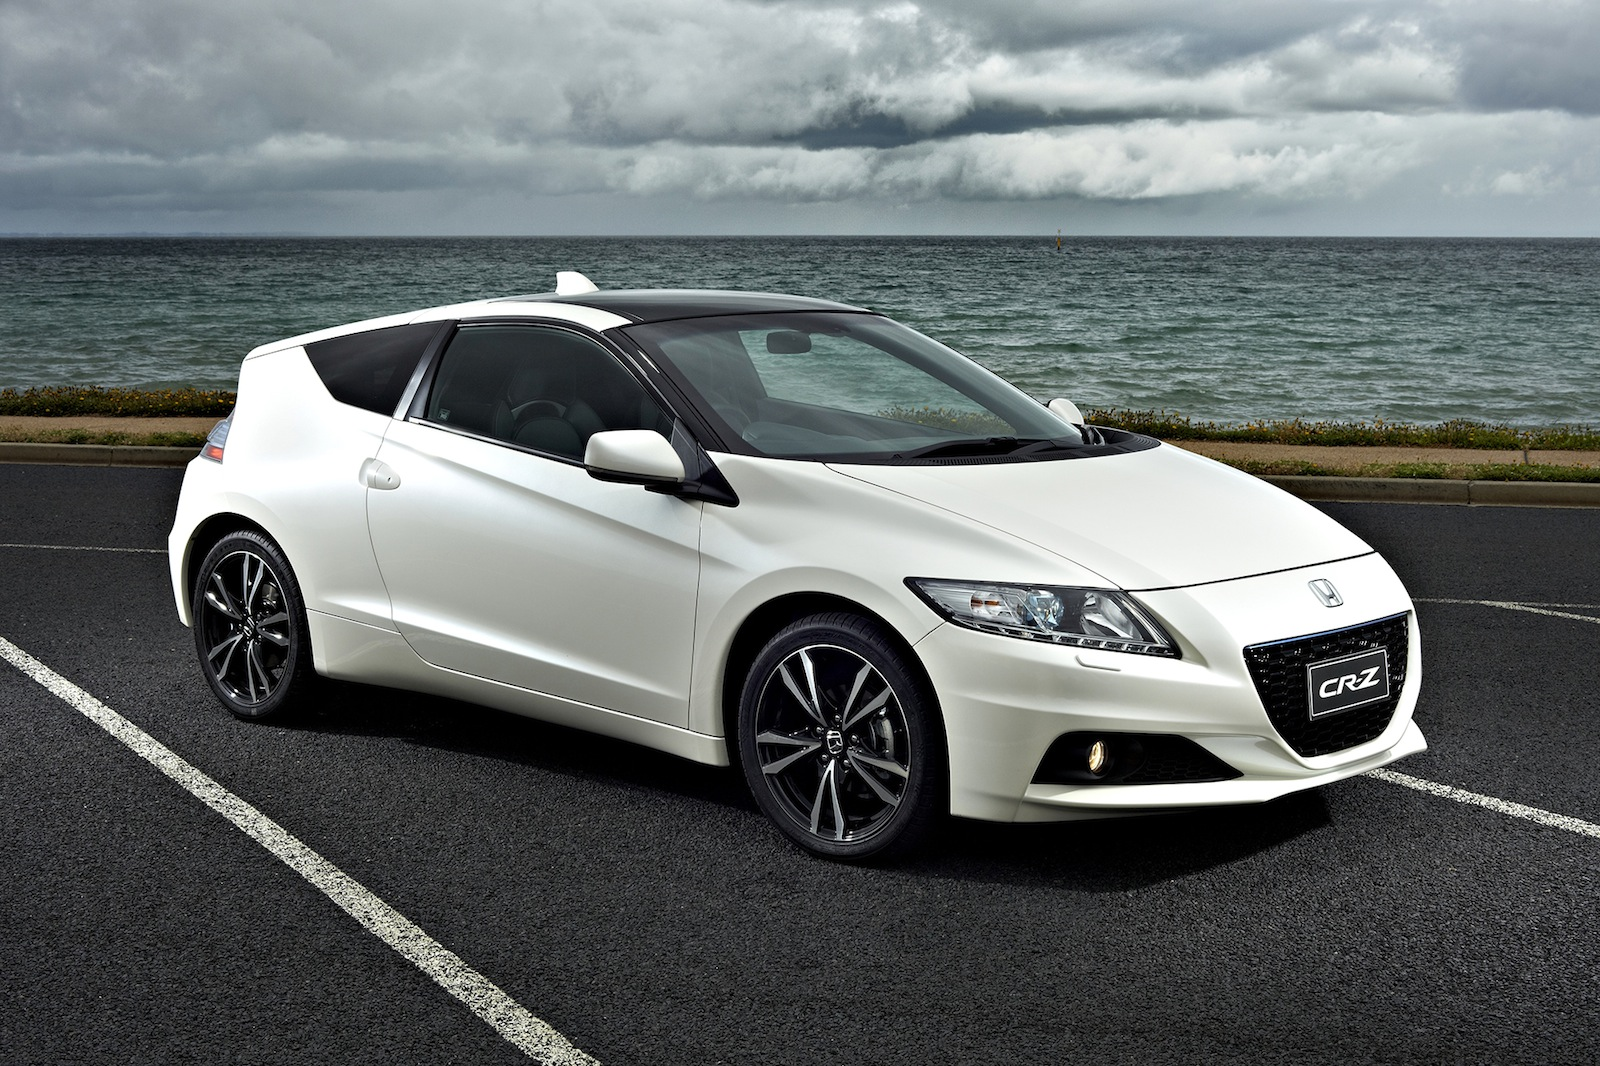 2013 Honda Cr Z Raises Power And Pricing Photos Caradvice